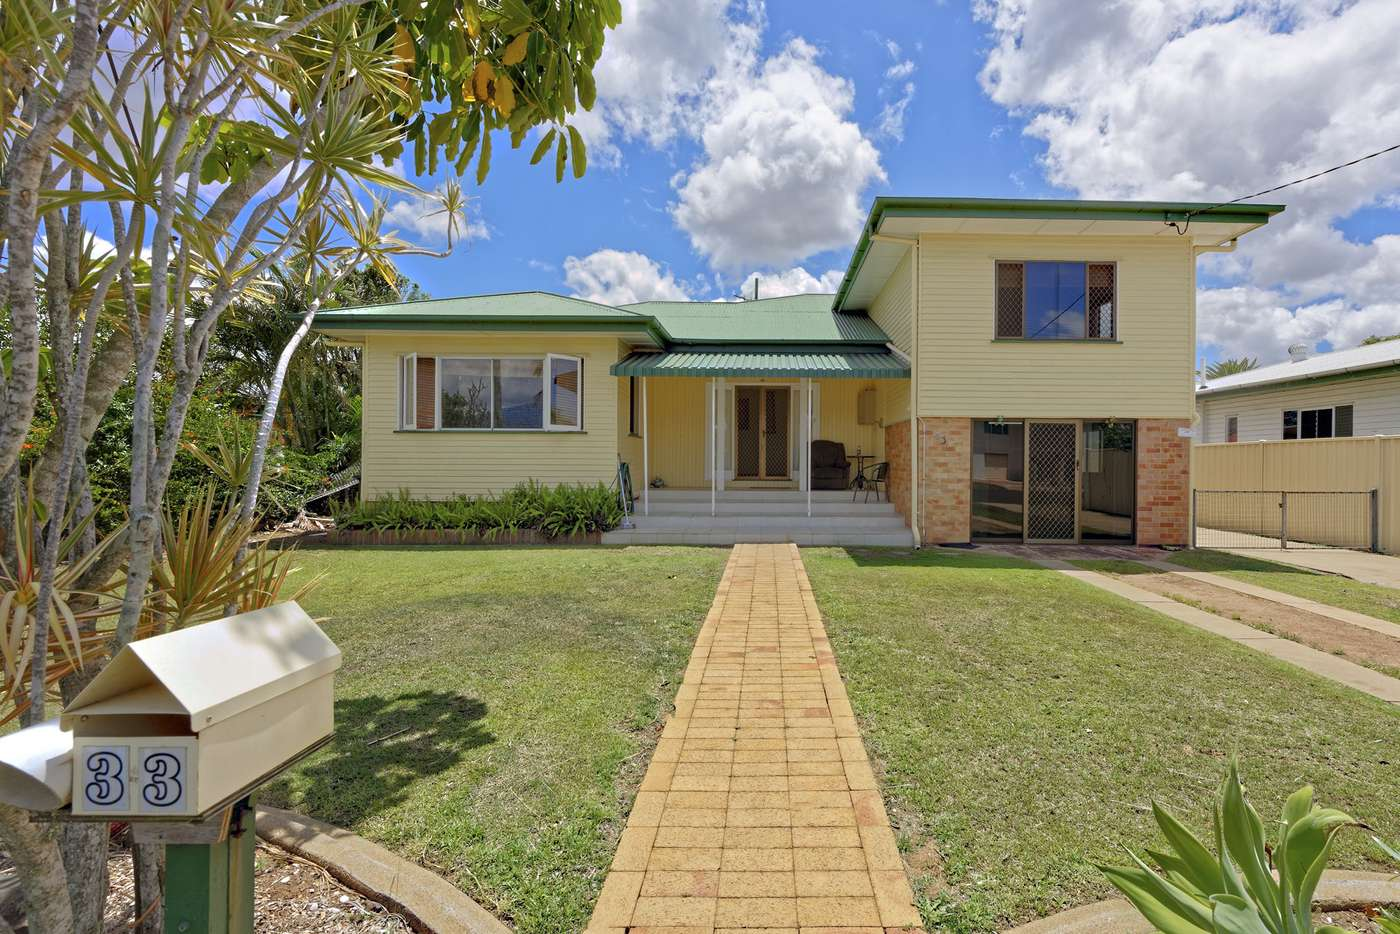 Main view of Homely house listing, 33 Wainwright St, Svensson Heights QLD 4670